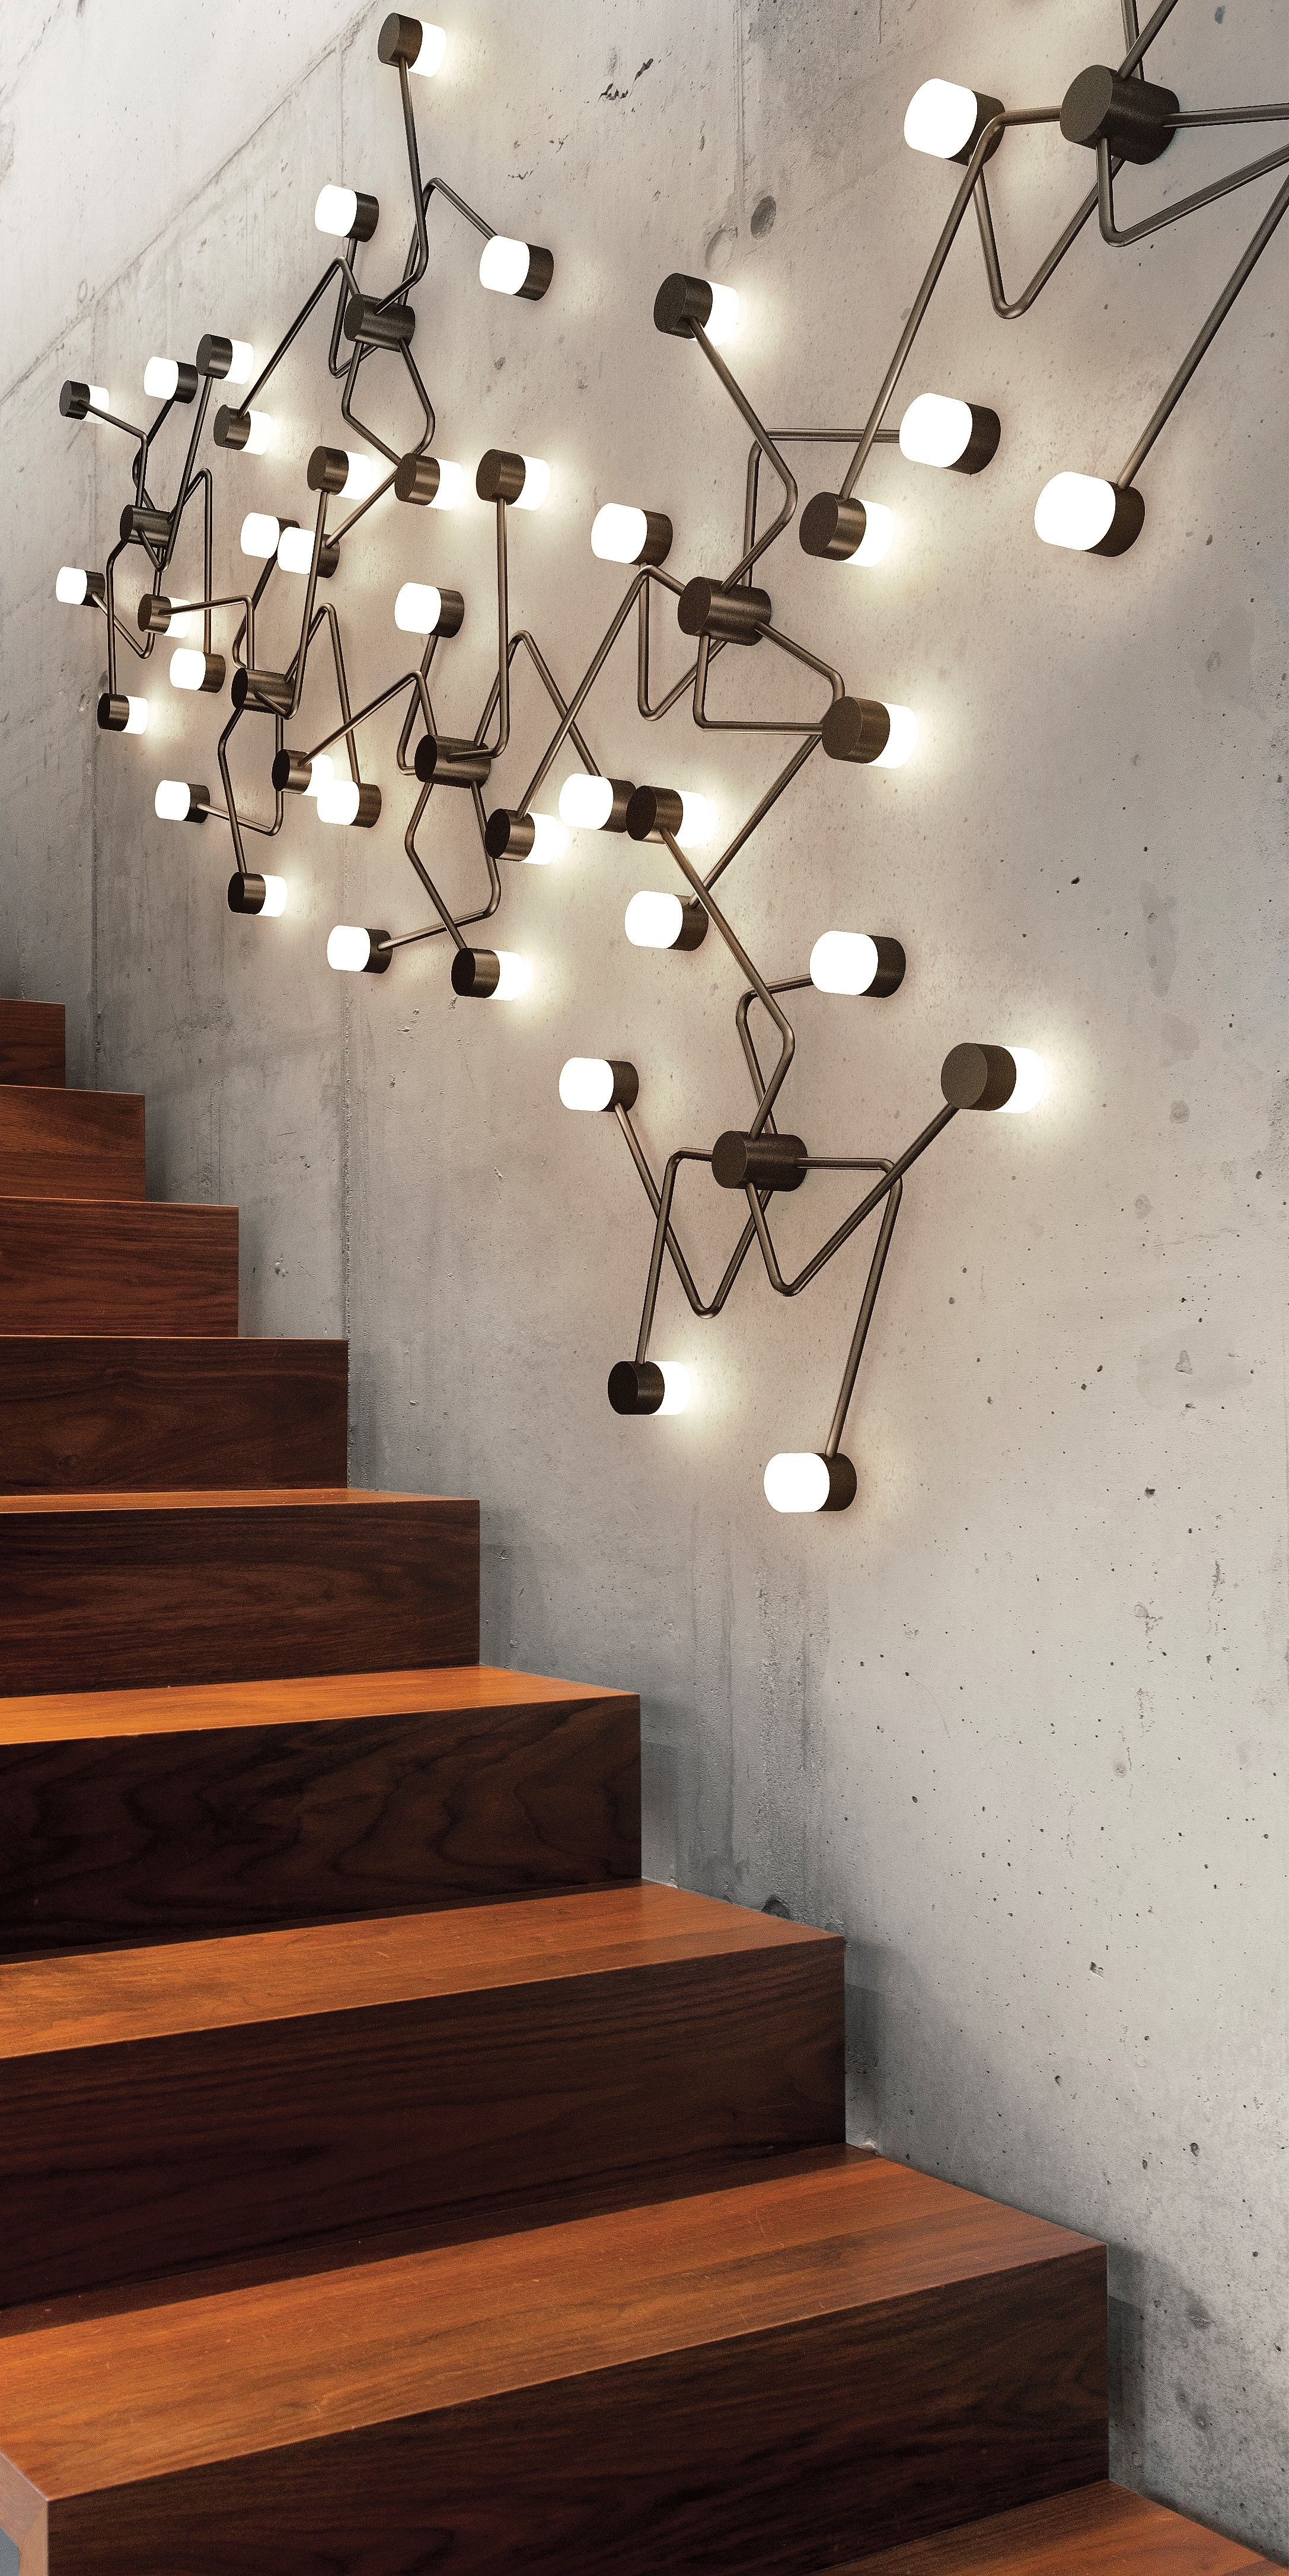 Constellation Wall Ceiling Light By Cvl Luminaires Constellation Wall Sg Sb Geometric Lighting Geometric Light Fixture Wall Ceiling Lights